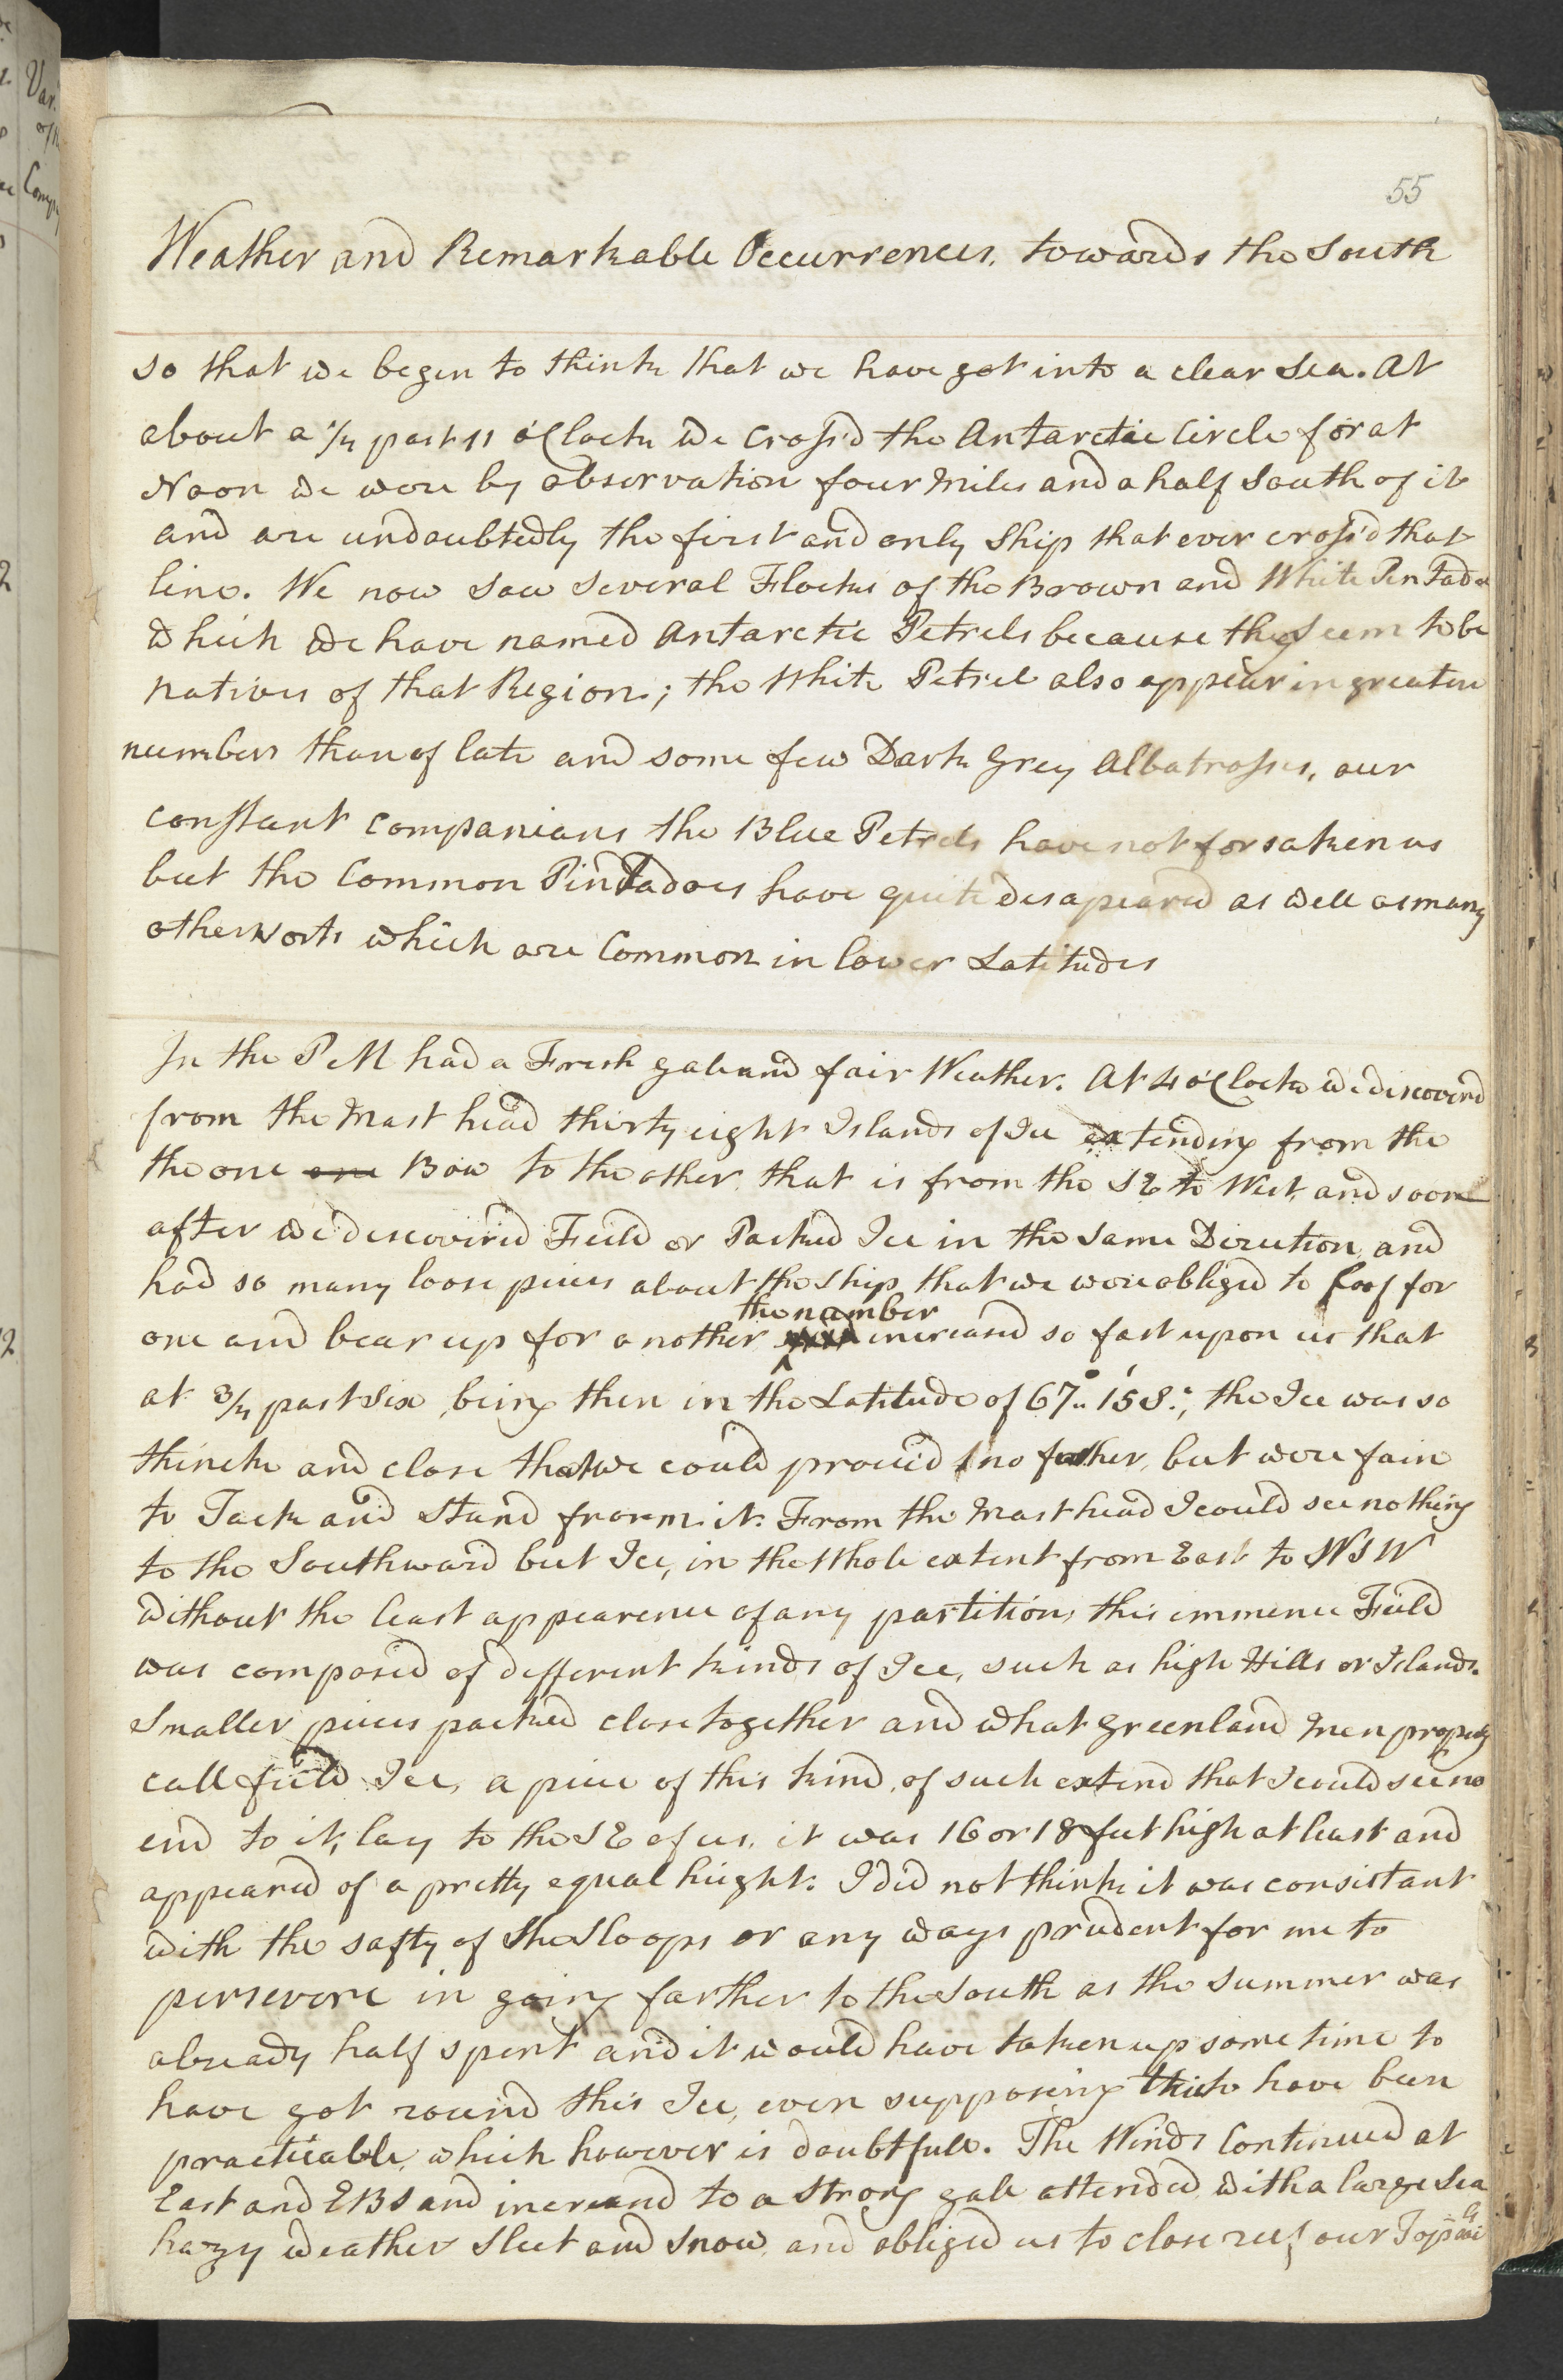 Cook's journal entry describing first crossing of Antarctic Circle, 17 January 1773 (c) British Library Board